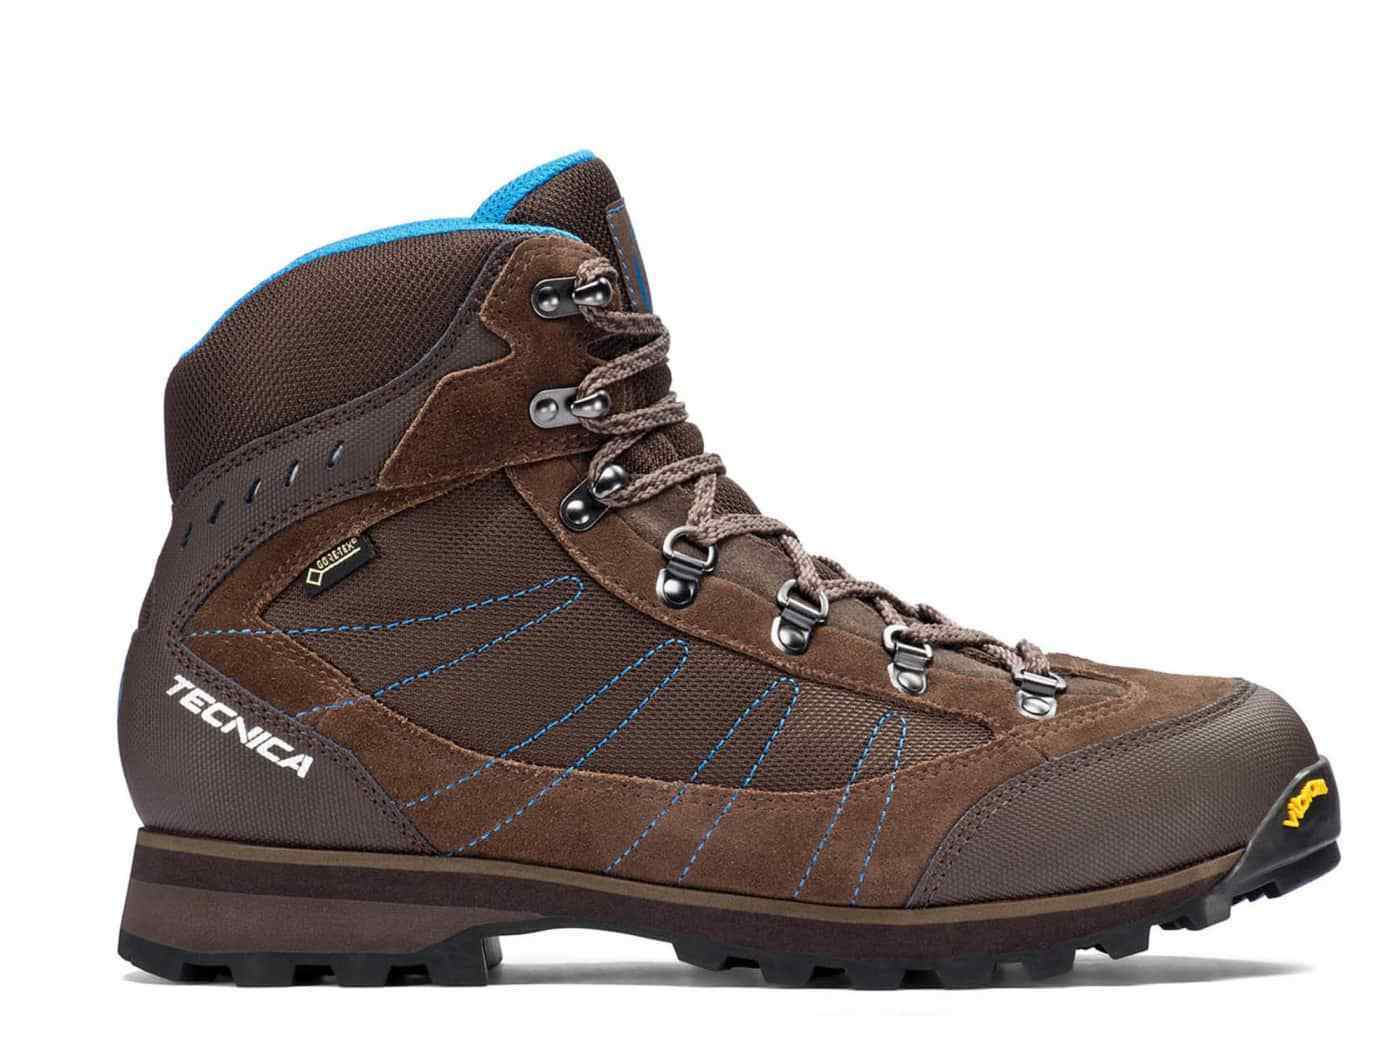 Tecnica Makalu IV  GTX Ms Chaussure de Trekking size 42 Eu US 9 8 UK brown  up to 65% off